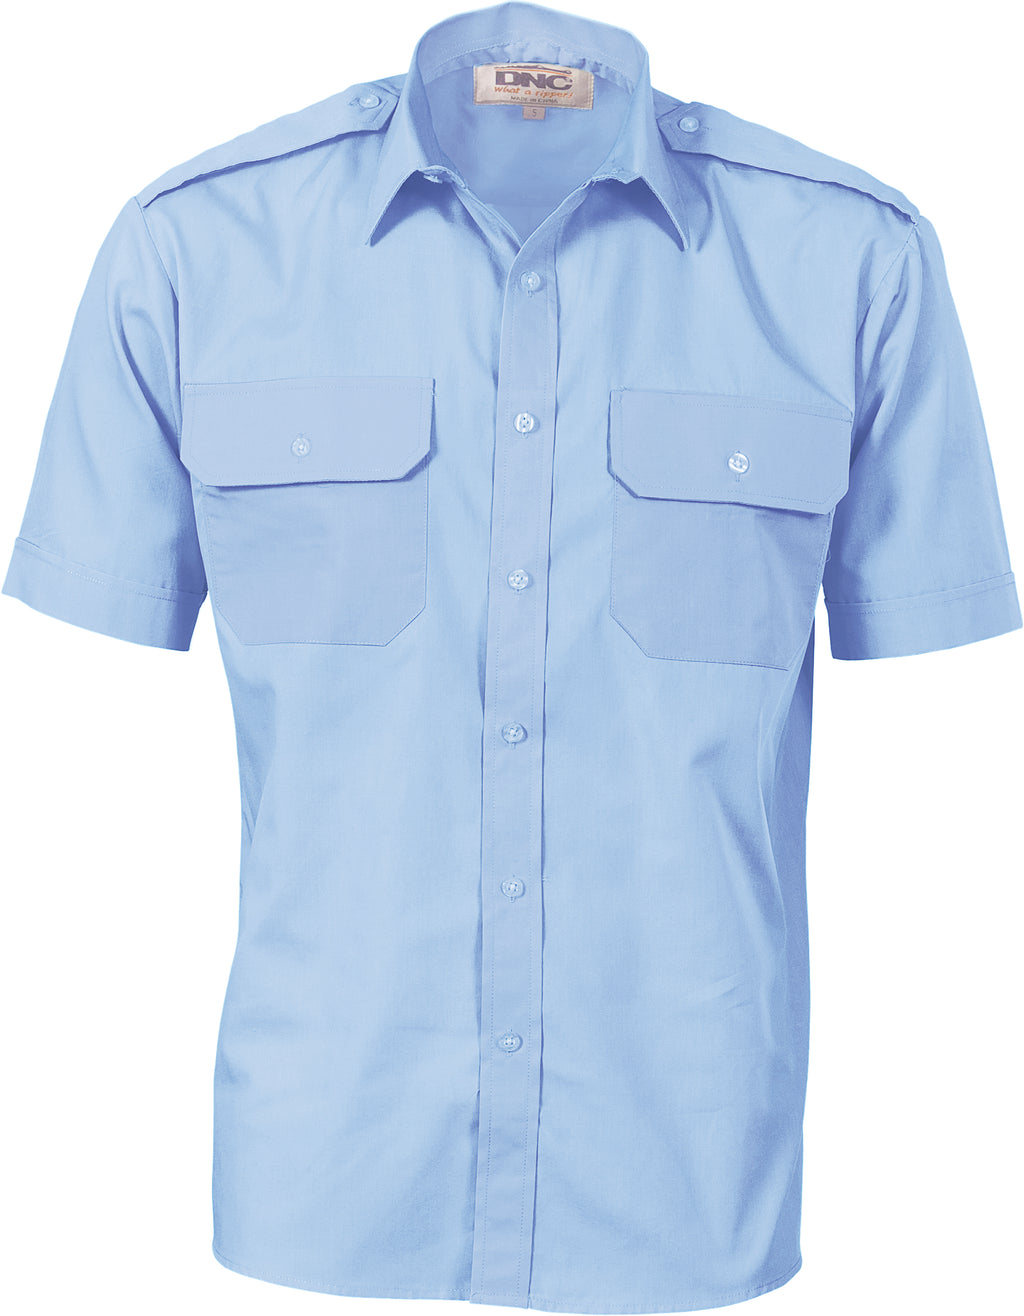 3213 - Epaulette Polyester/Cotton Work Shirt - Short Sleeve